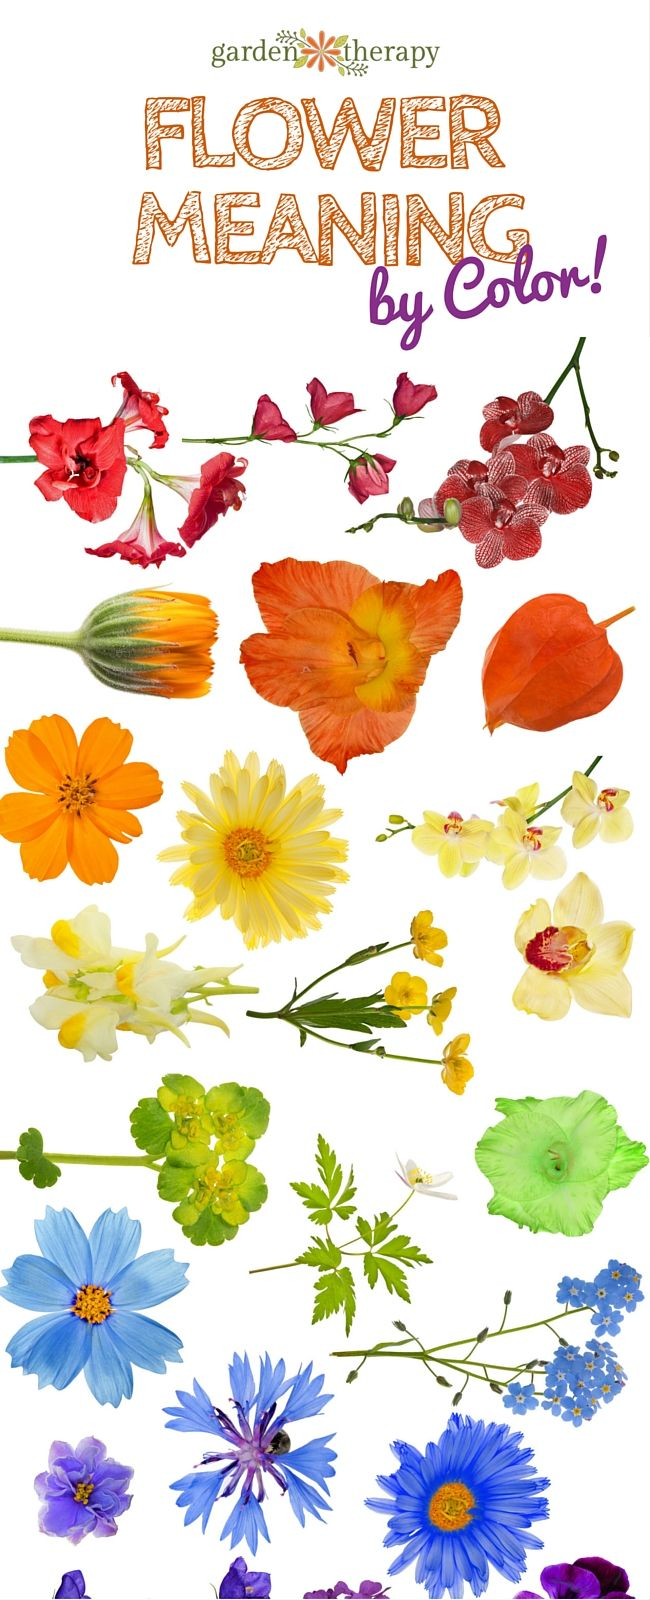 Best 20 meaning of flowers ideas on pinterest flower meanings best 20 meaning of flowers ideas on pinterest flower meanings rose color meanings and flowers and their meanings dhlflorist Images